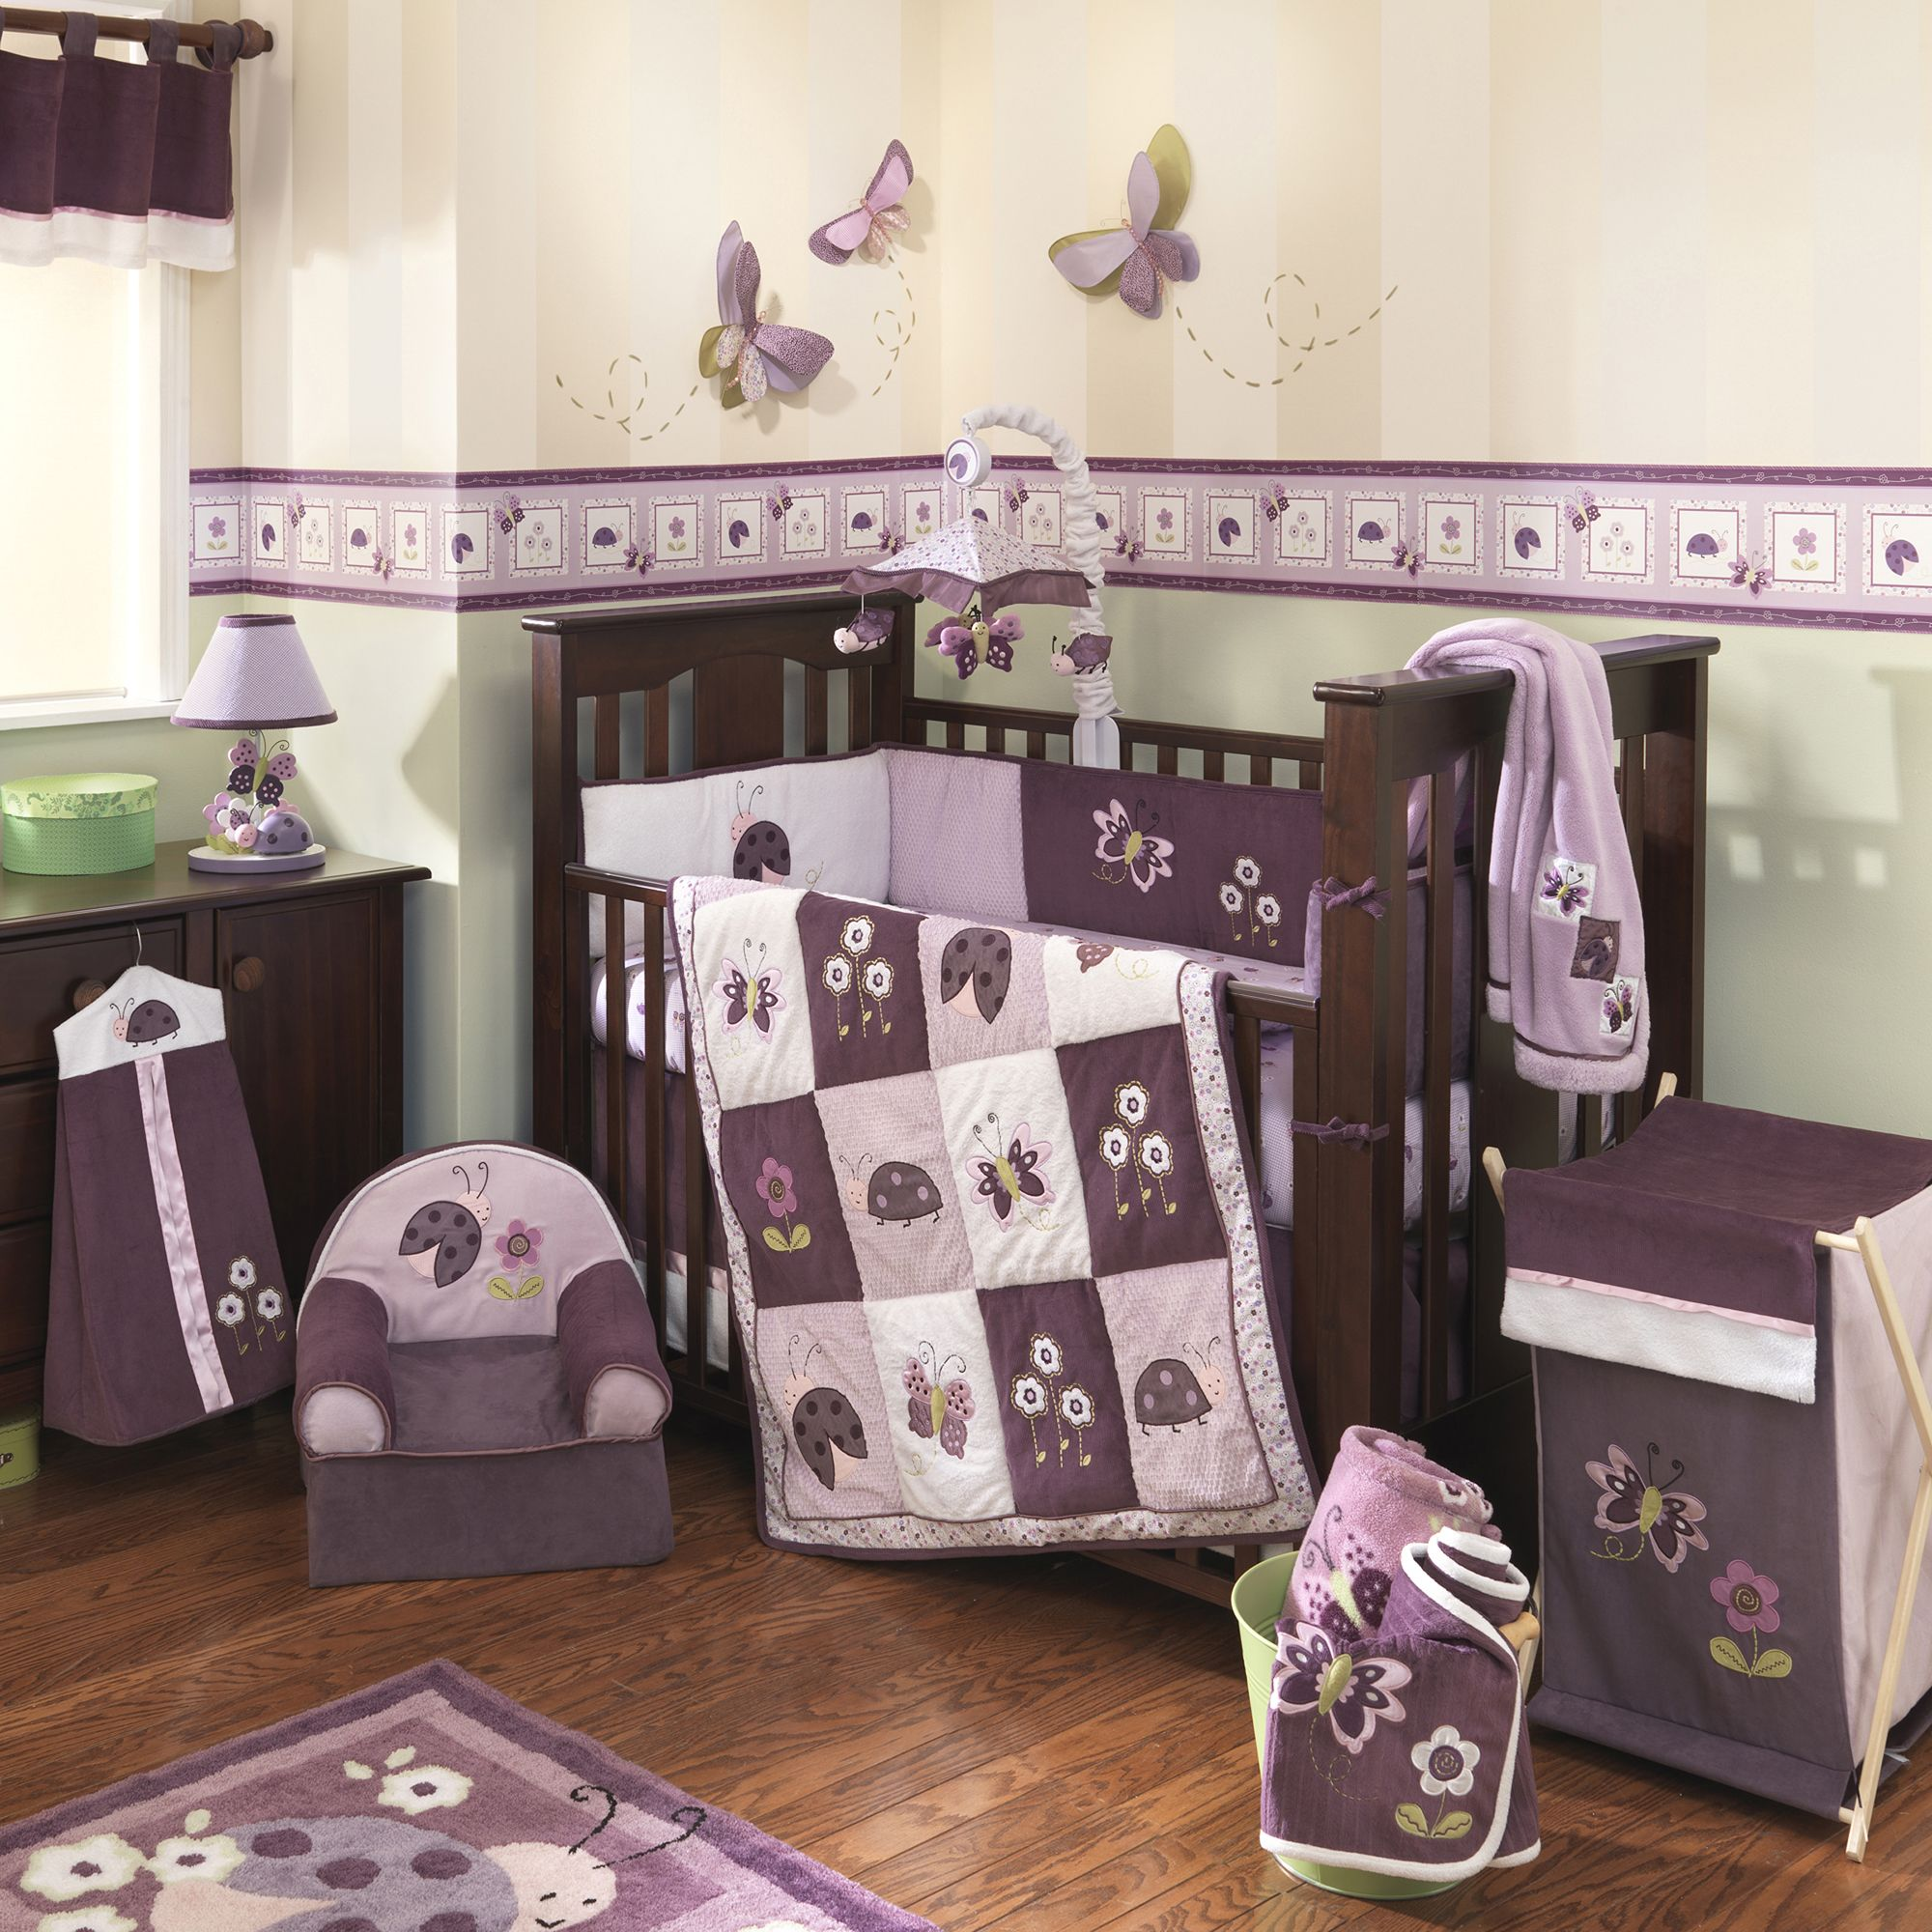 Lambs & Ivy-Luv Bugs Bedding Collection